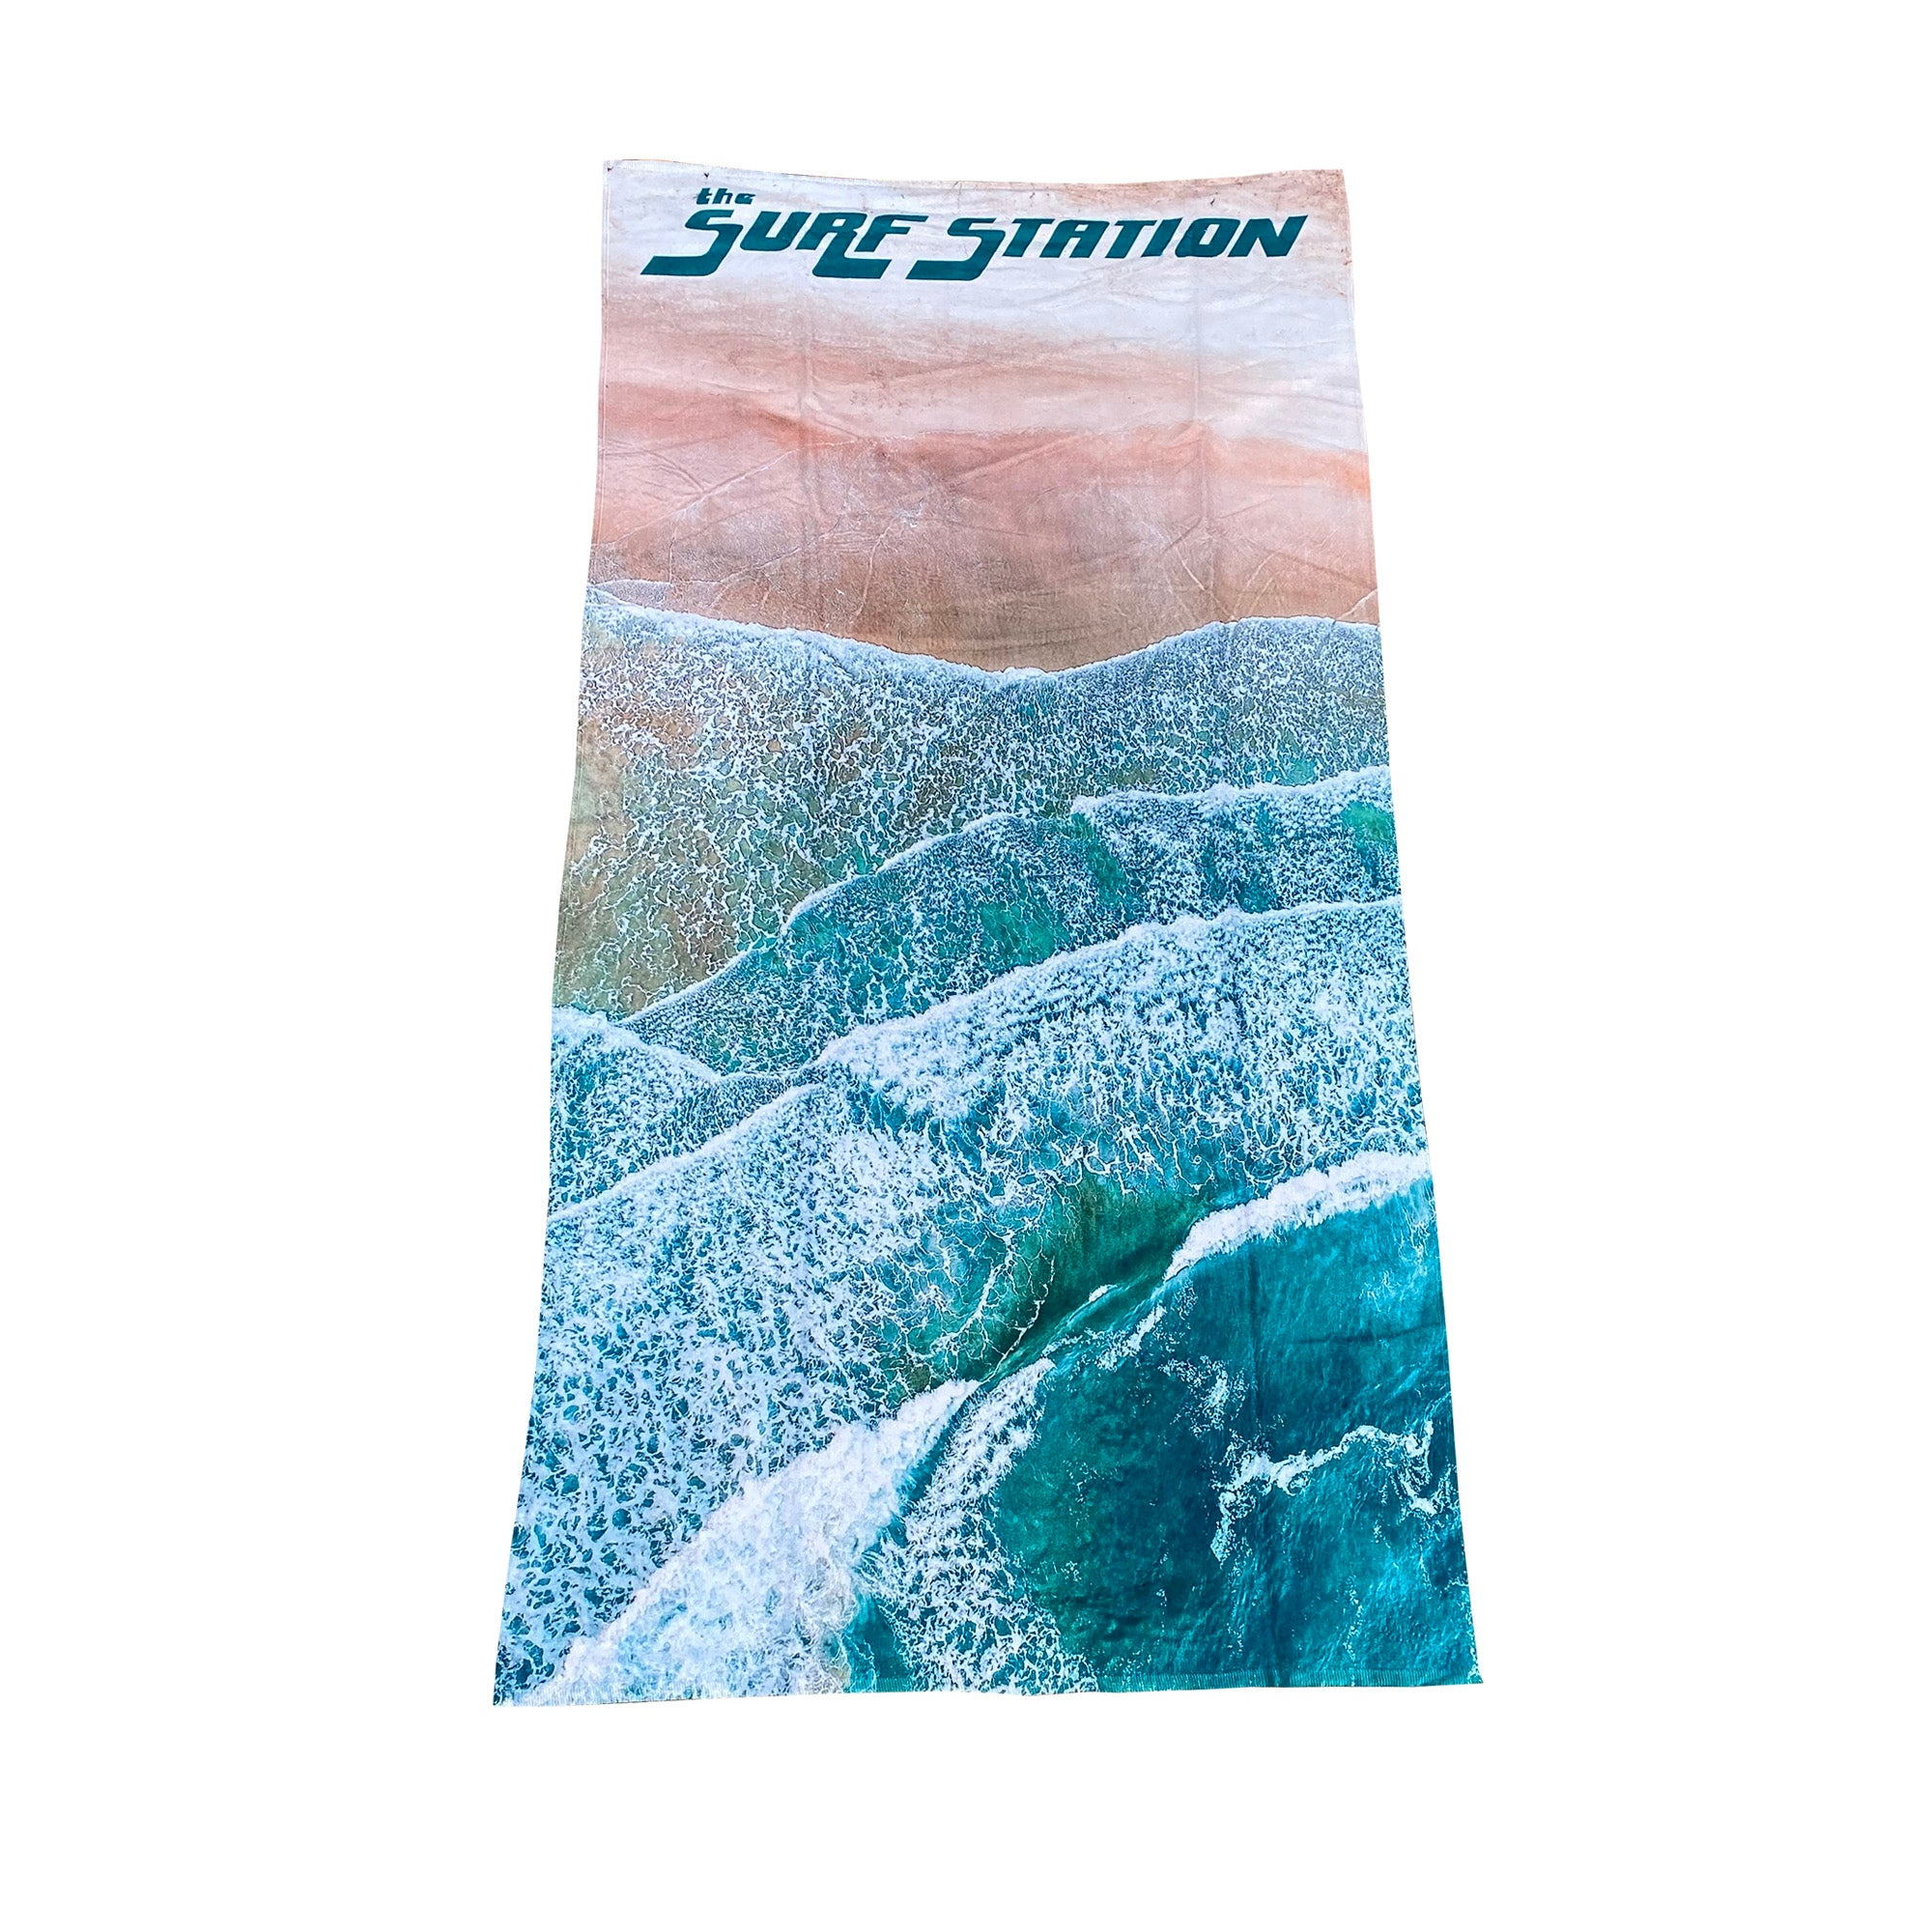 Surf Station Beach Towel - Current